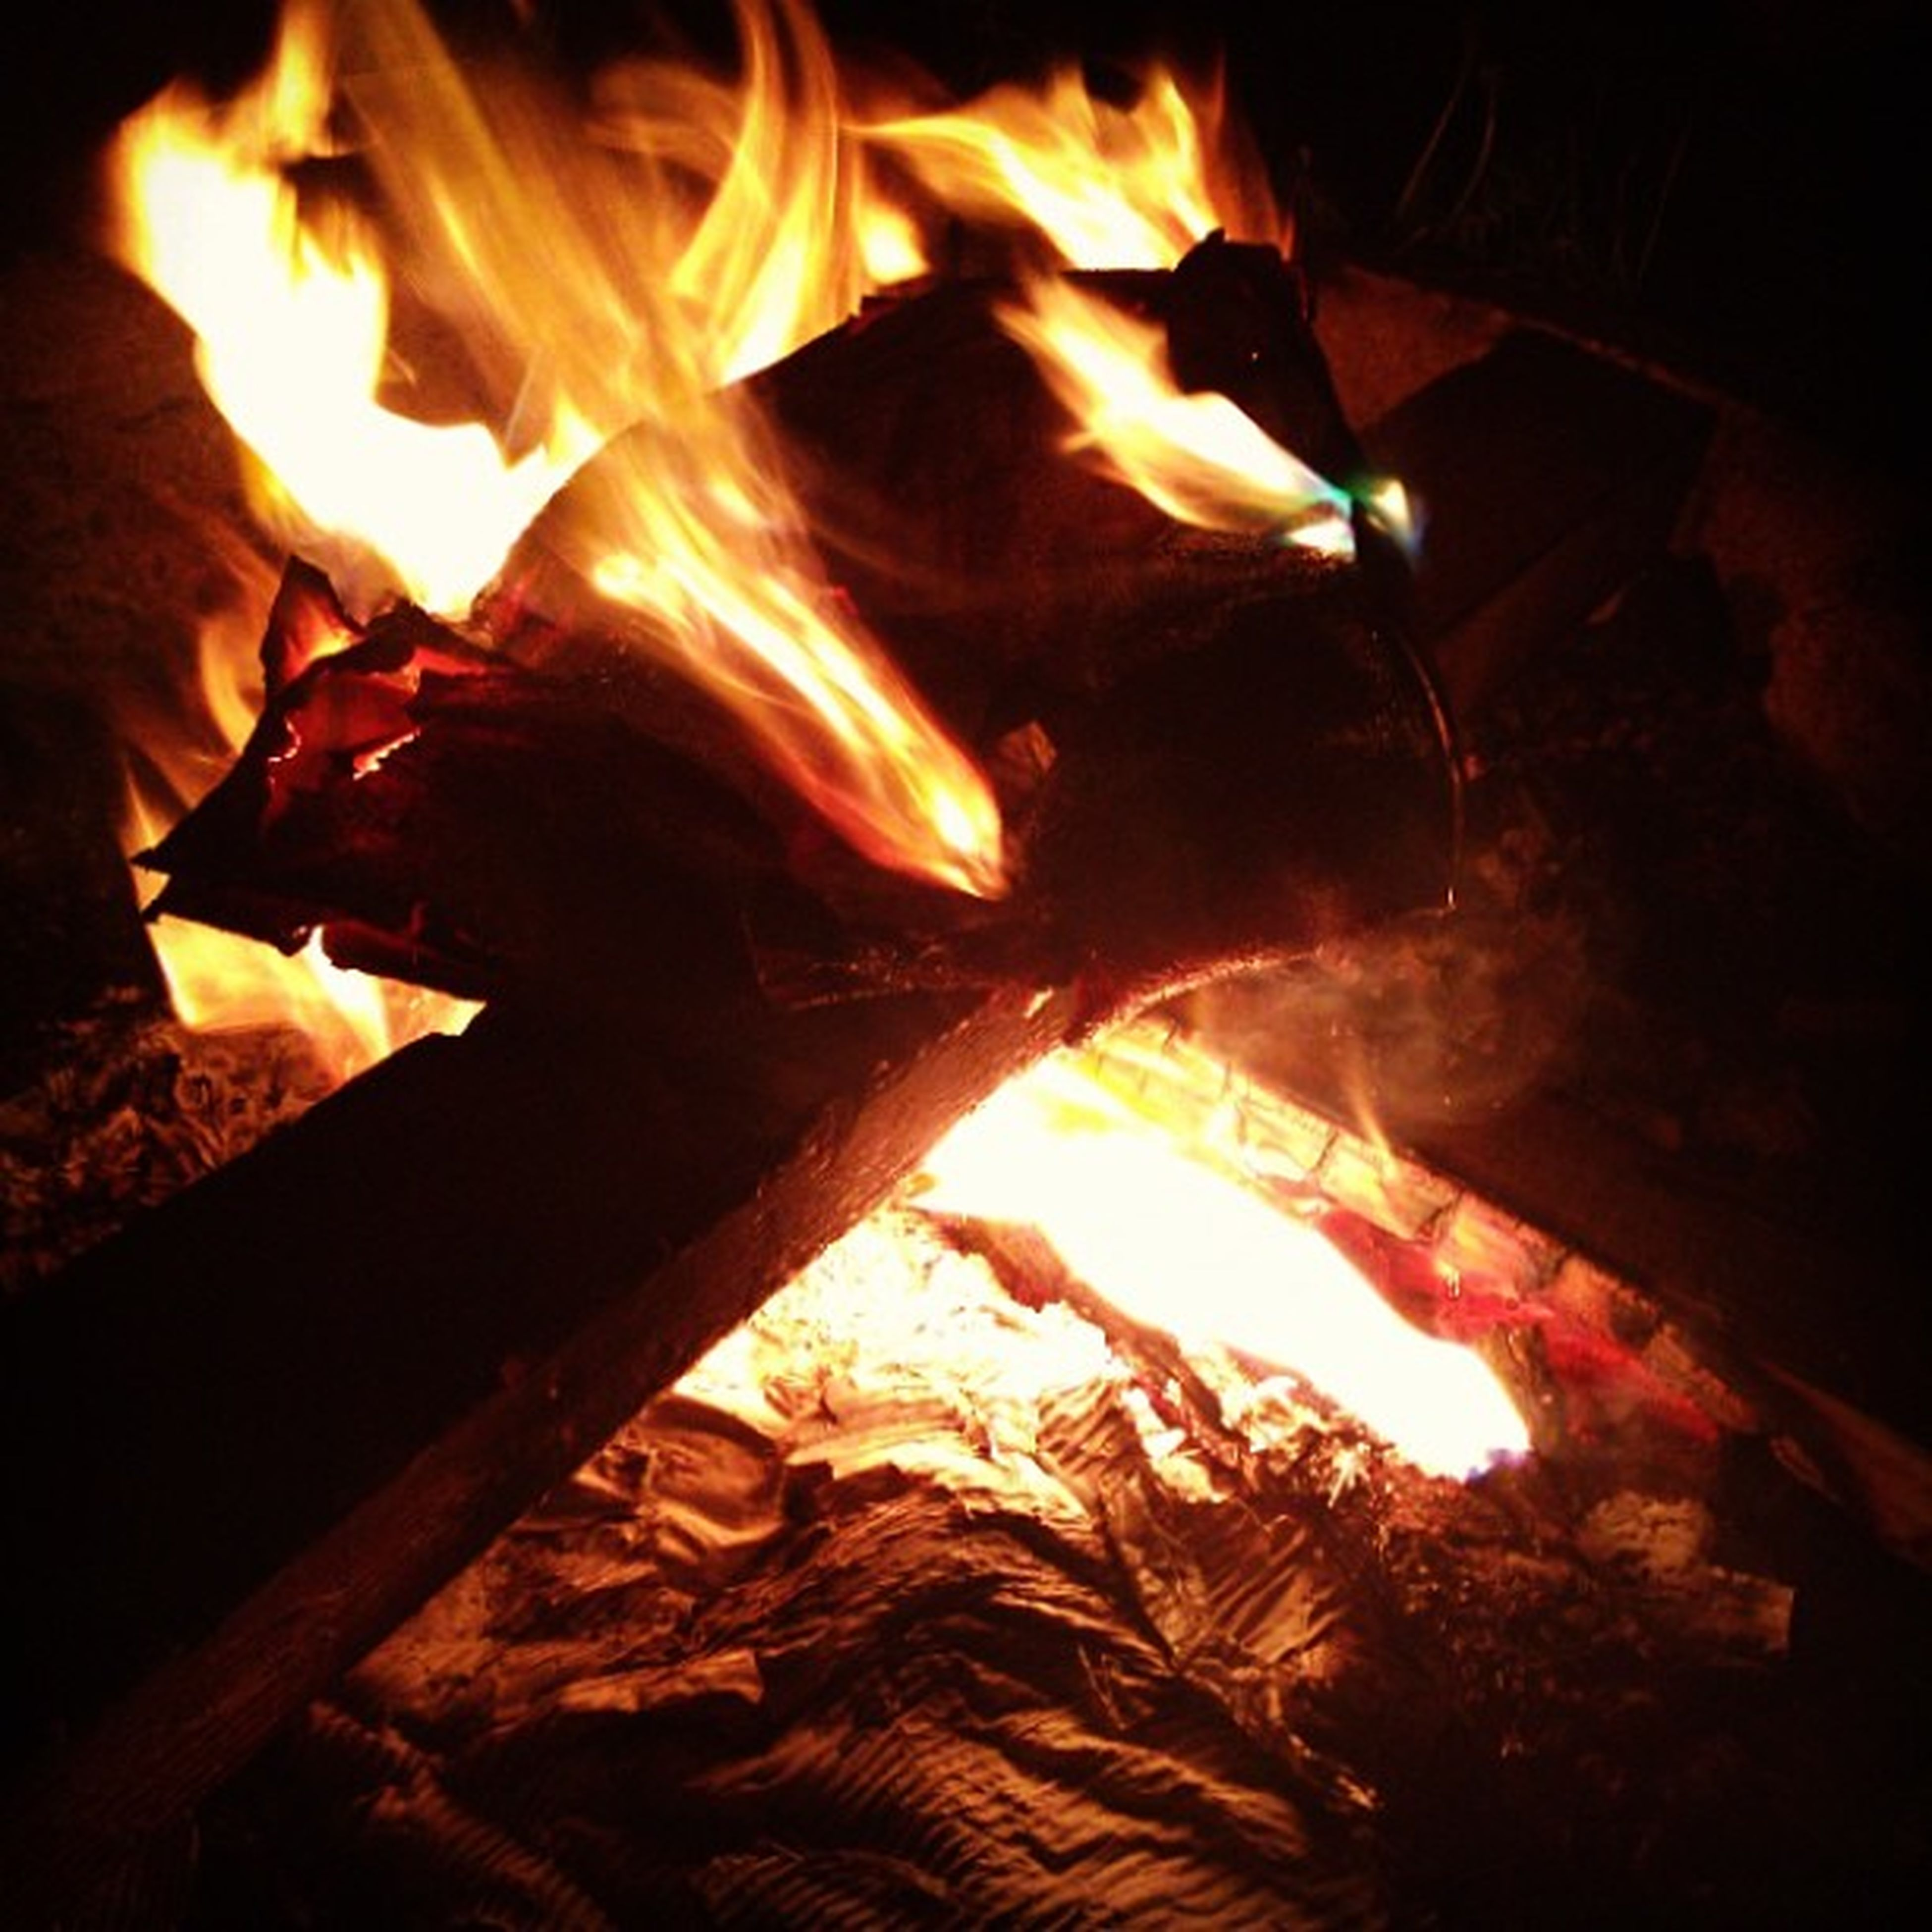 burning, flame, fire - natural phenomenon, heat - temperature, glowing, night, fire, illuminated, bonfire, indoors, person, close-up, heat, firewood, candle, orange color, part of